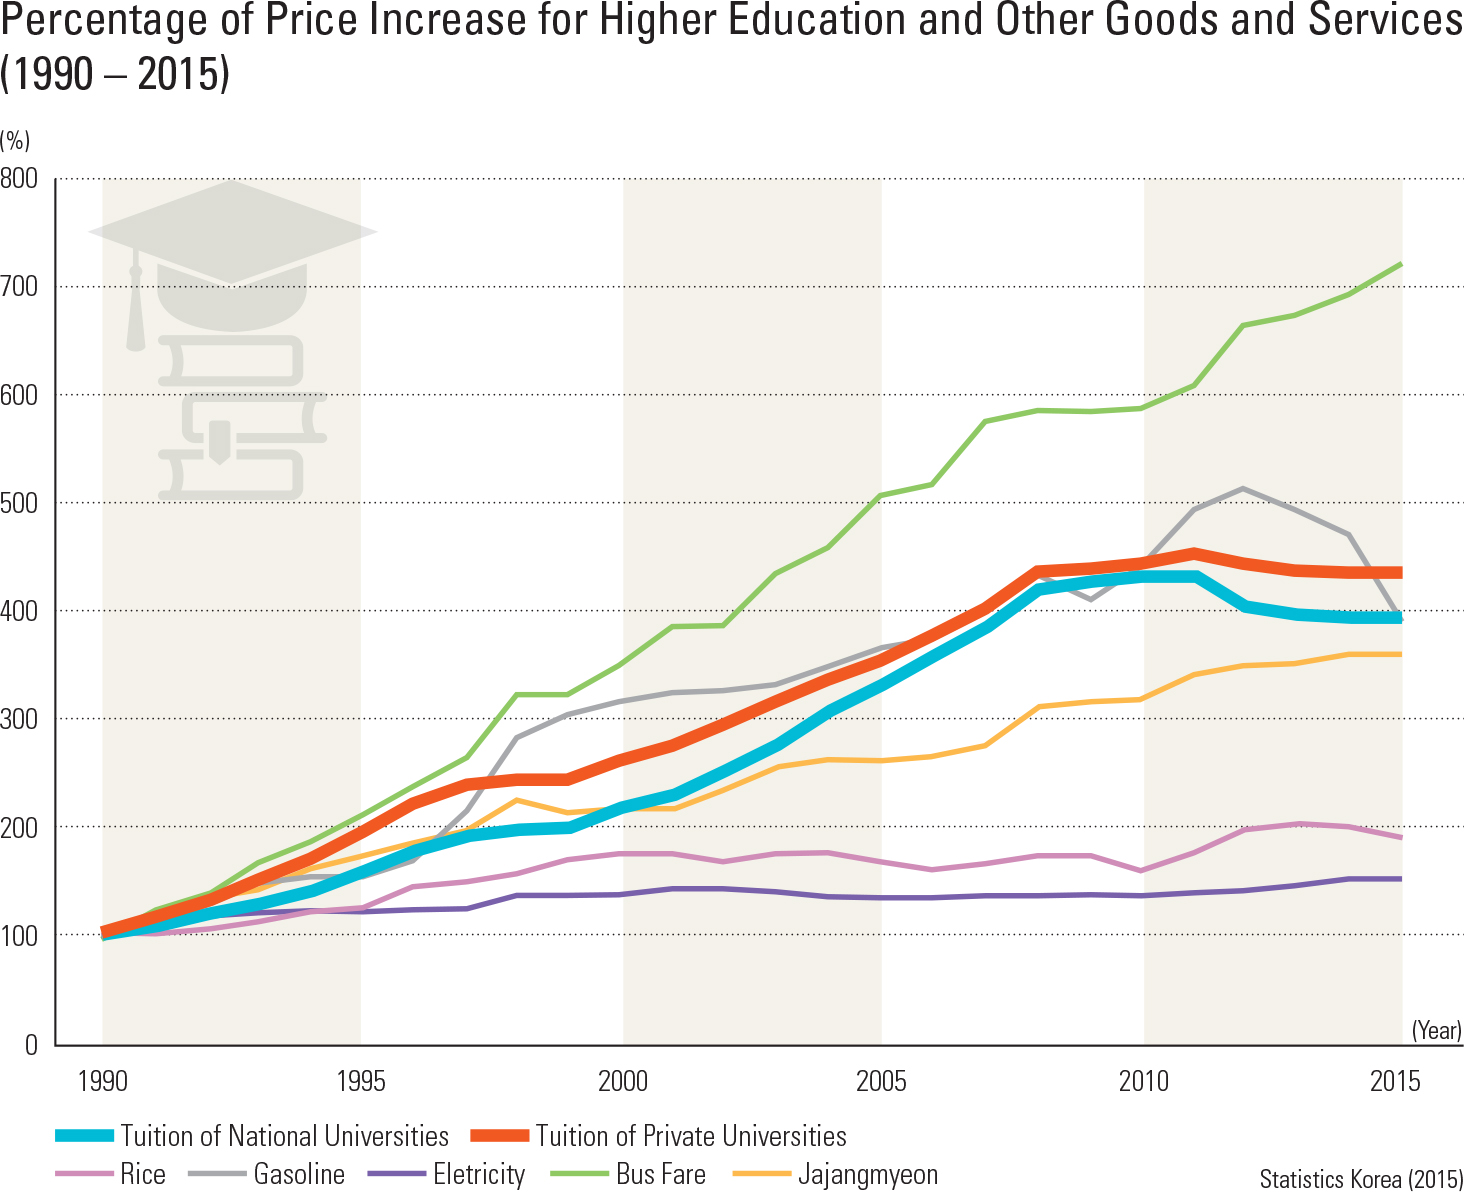 Percentage of Price Increase for Higher Education and Other Goods and Services (1990 – 2015)